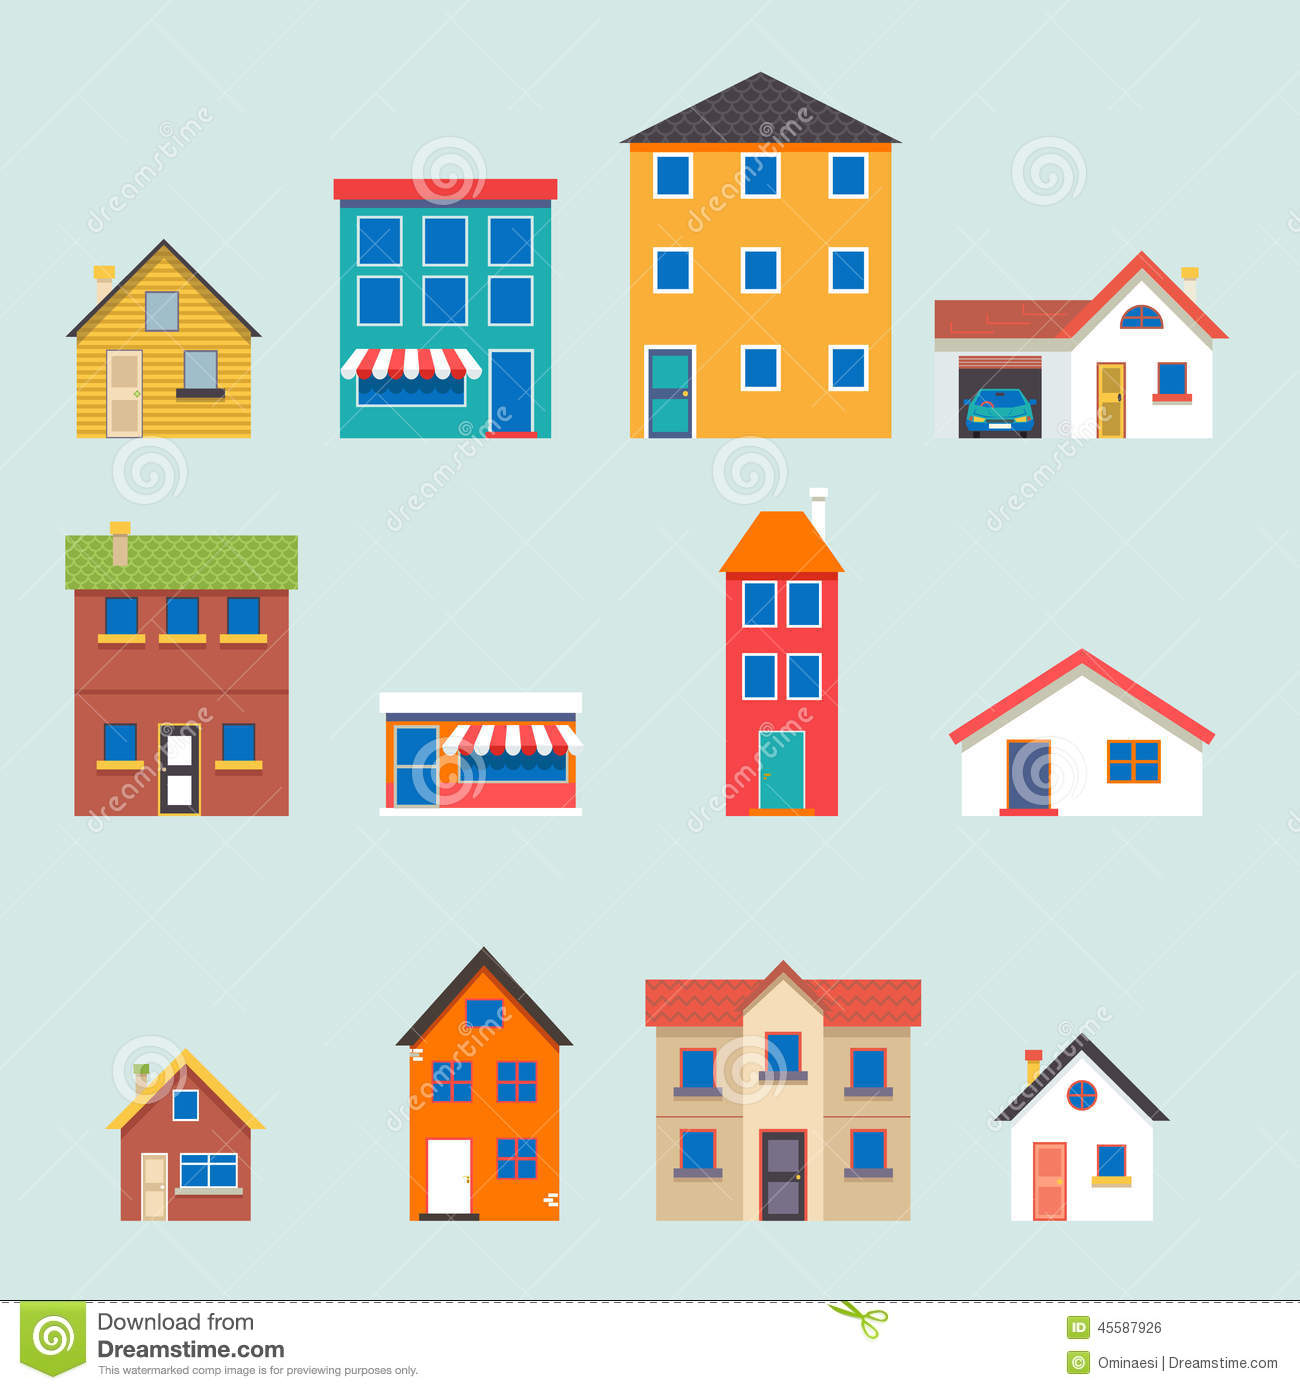 Modern Trendy Retro House Street Flat Icons Set Stock Vector Illustration of garage flat